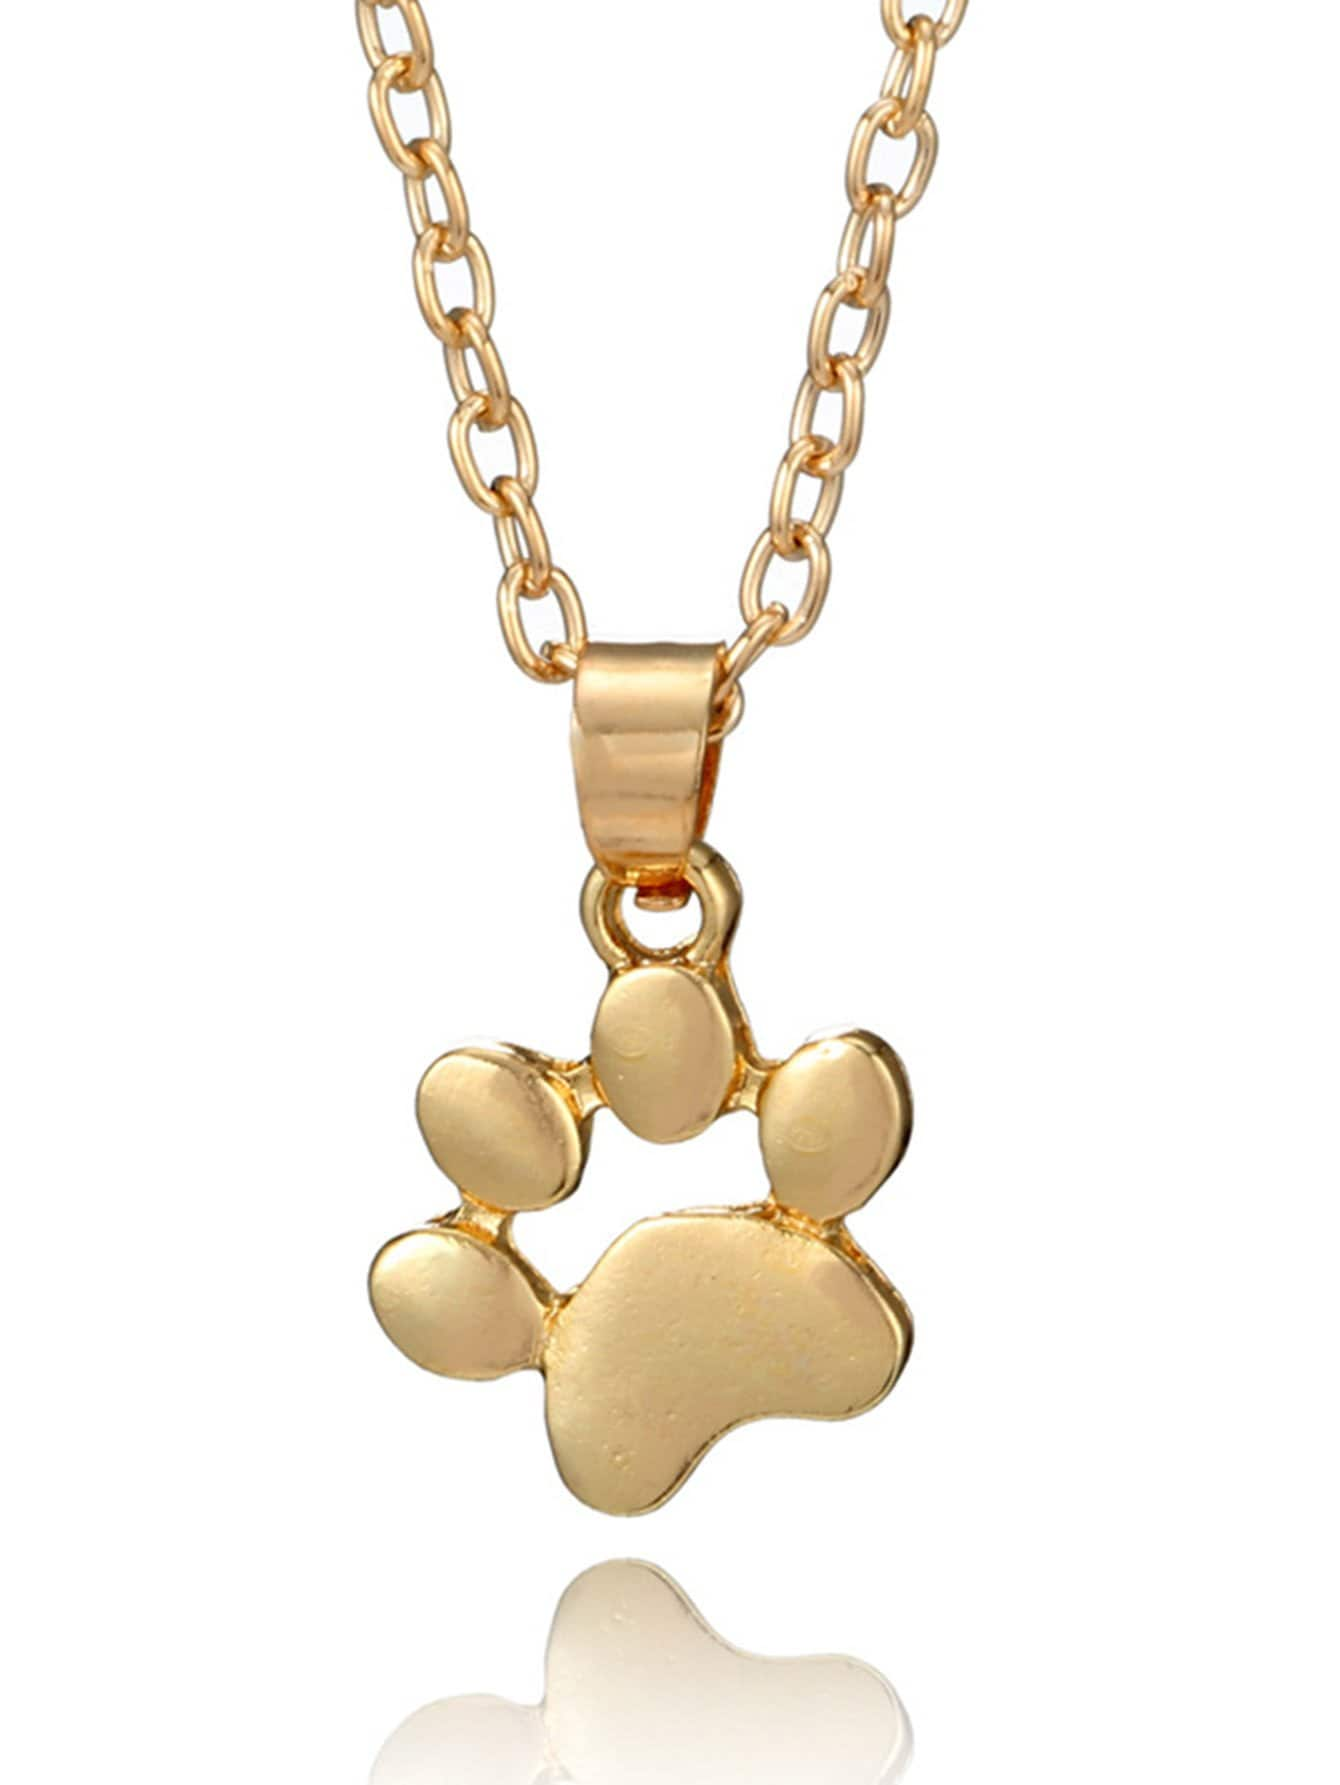 Dog Footprint Pendant Chain Necklace